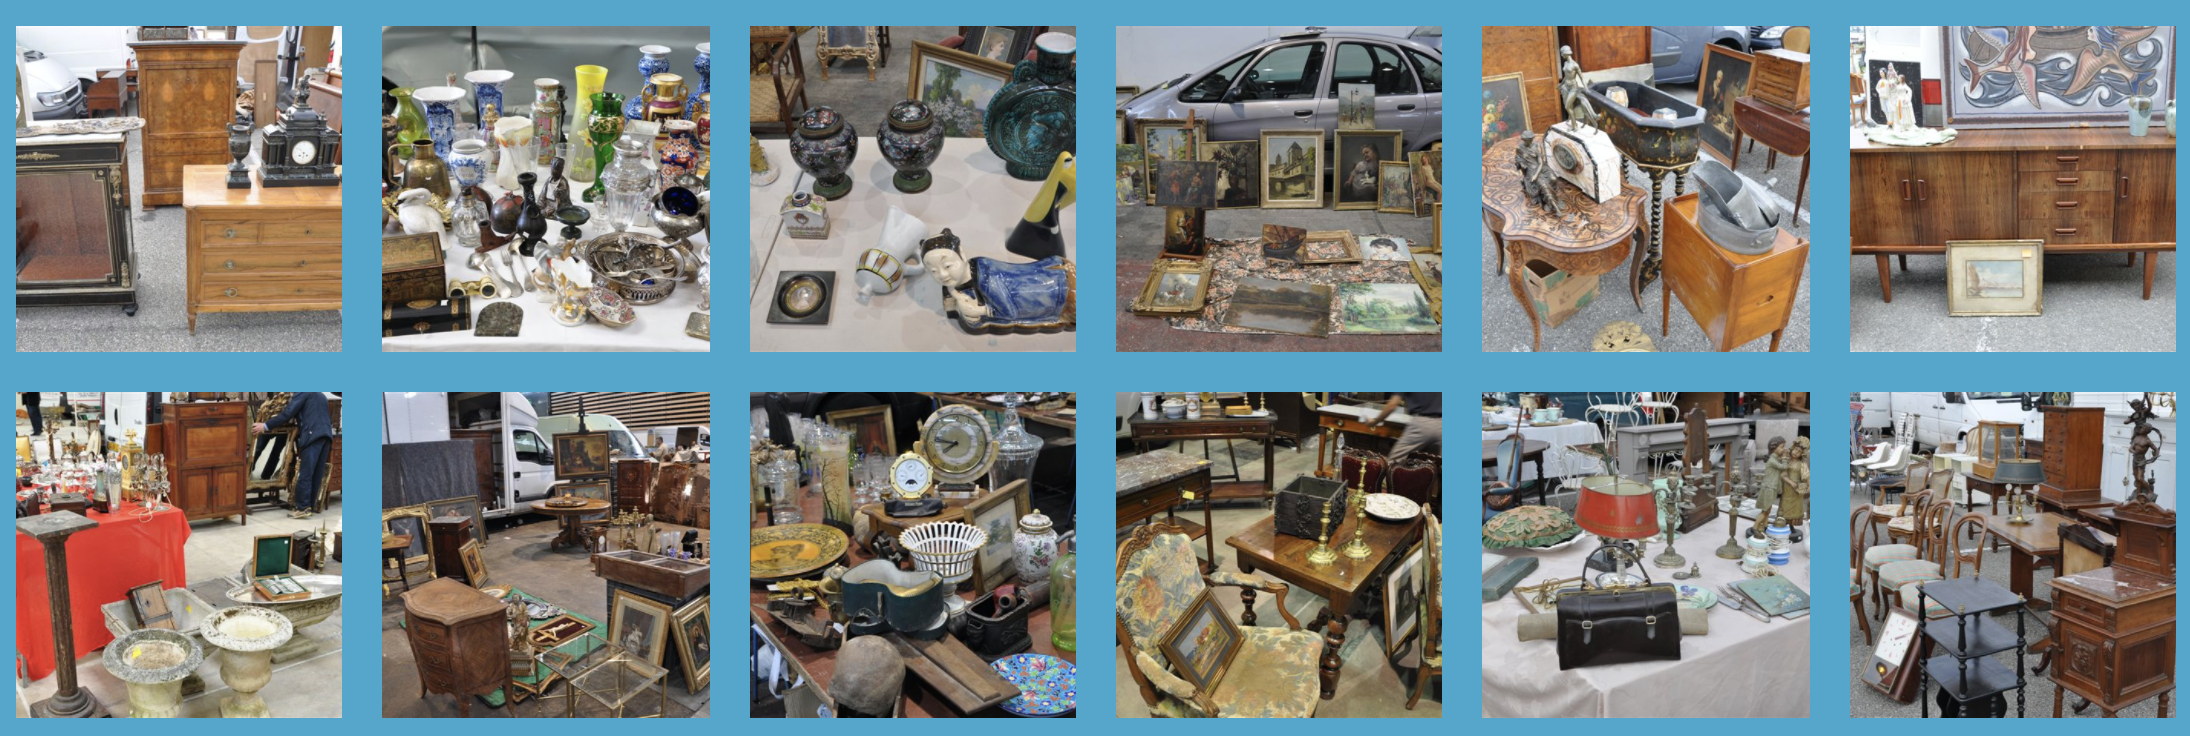 DÉBALLAGE Montpellier – WHOLESALE ANTIQUE SHOW IN THE SOUTH OF FRANCE 2018 Calendar